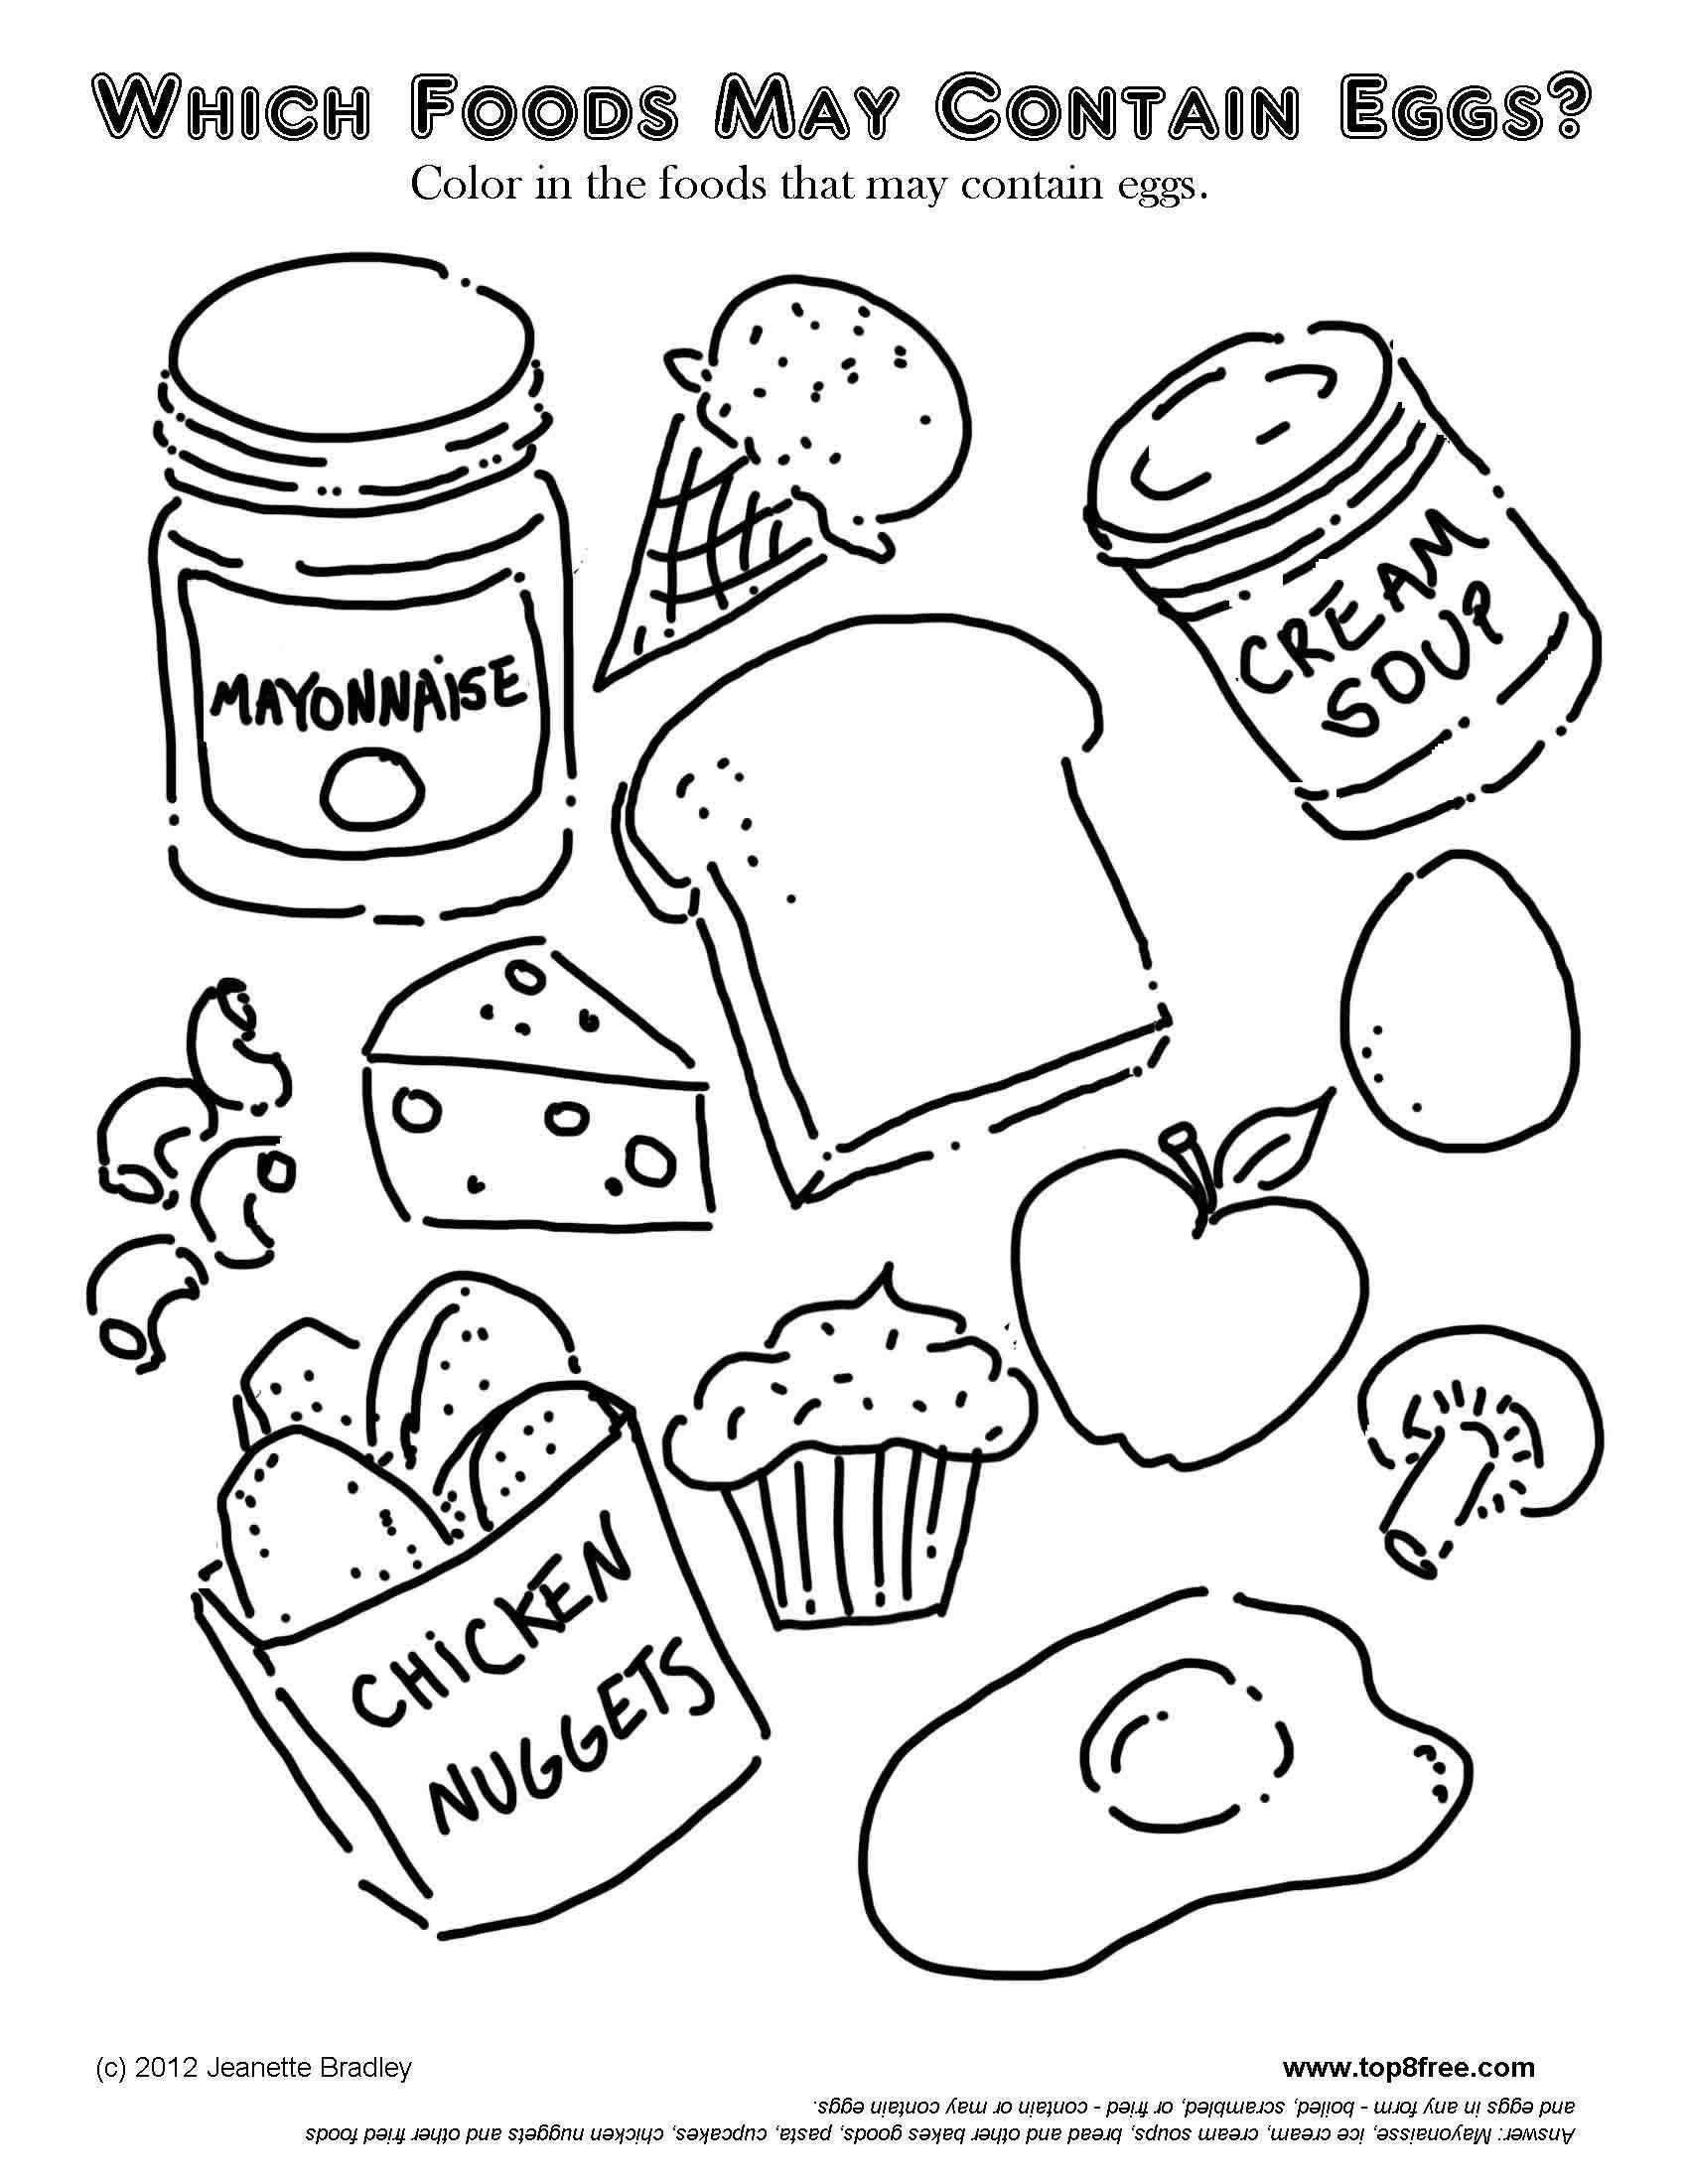 How To Make Black Food Coloring Awesome White Food Coloring Food Coloring Pages Free Kids Coloring Pages Black Food Coloring